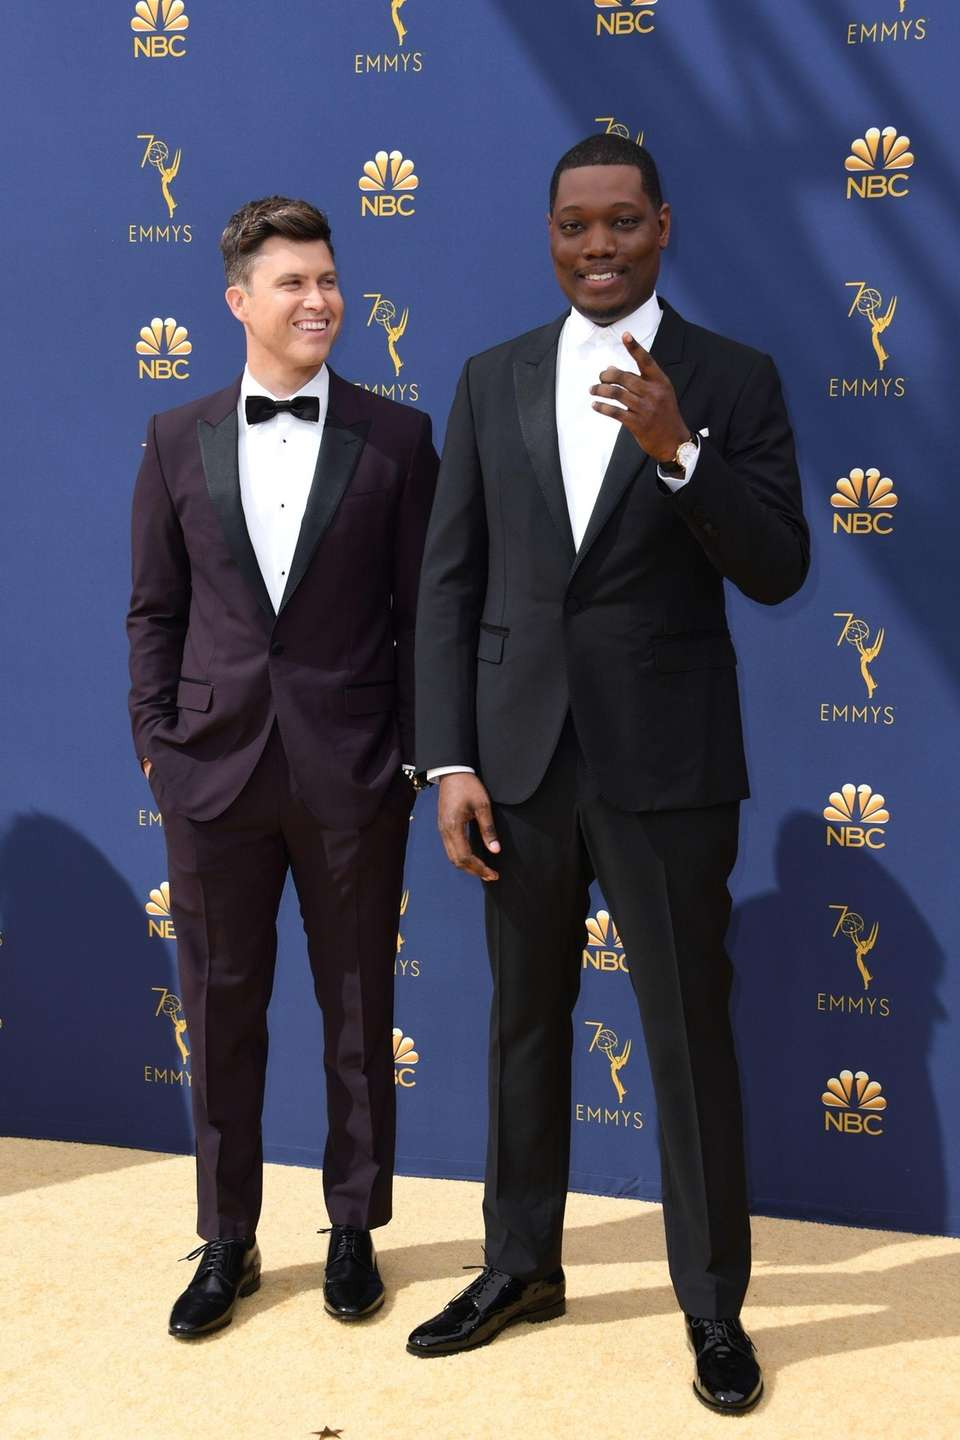 Emmy hosts Colin Jost, left, and Michael Che